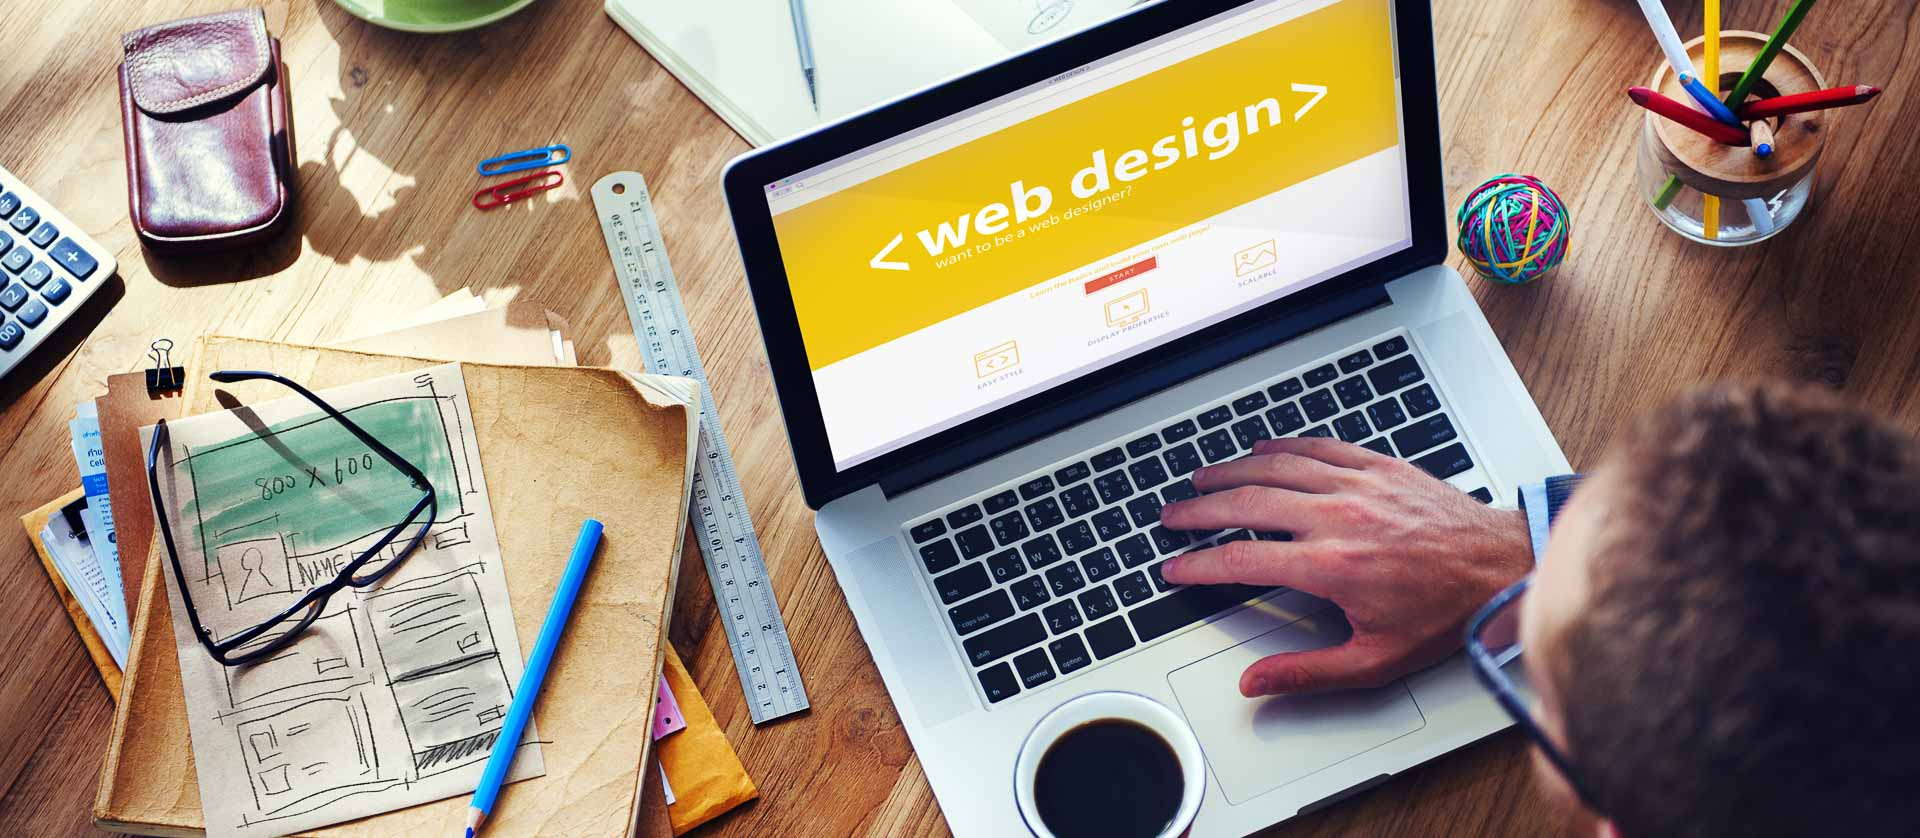 Web Design Packages in Doncaster from £45 per month!